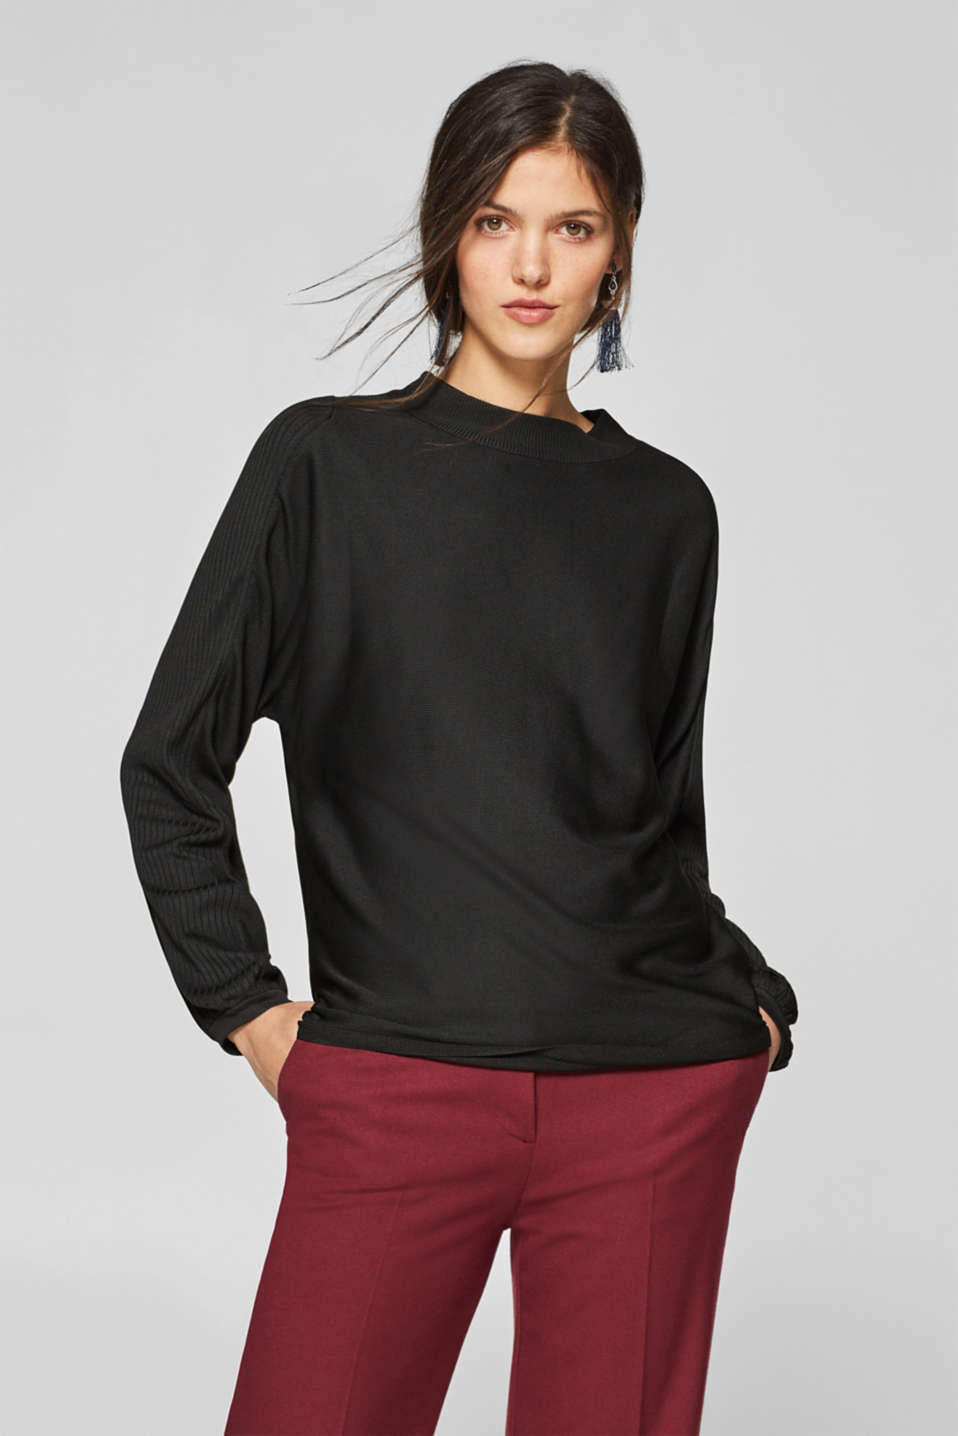 Esprit - Long-sleeved turtleneck with ribbed textures